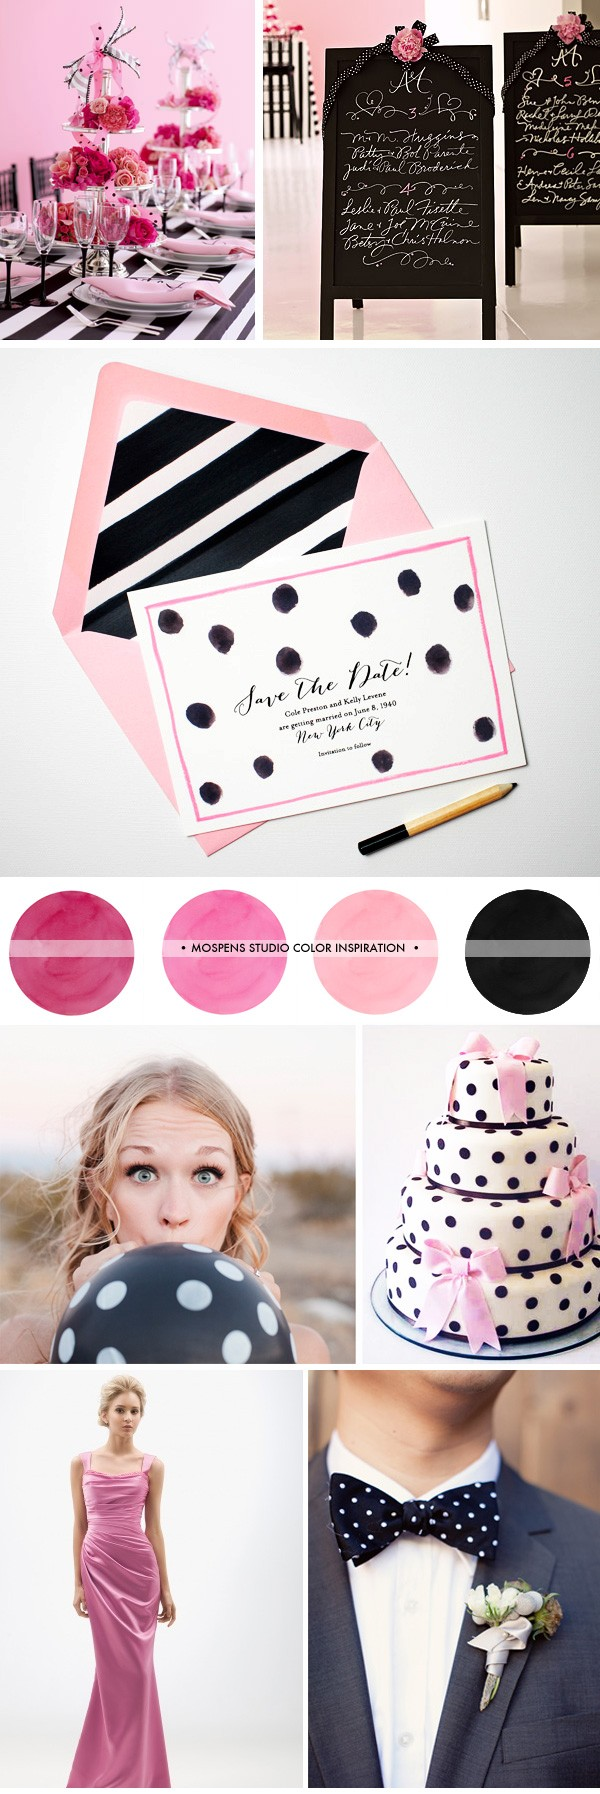 Pink, Black and White Wedding Ideas with Polka-Dots | Mospens Studio